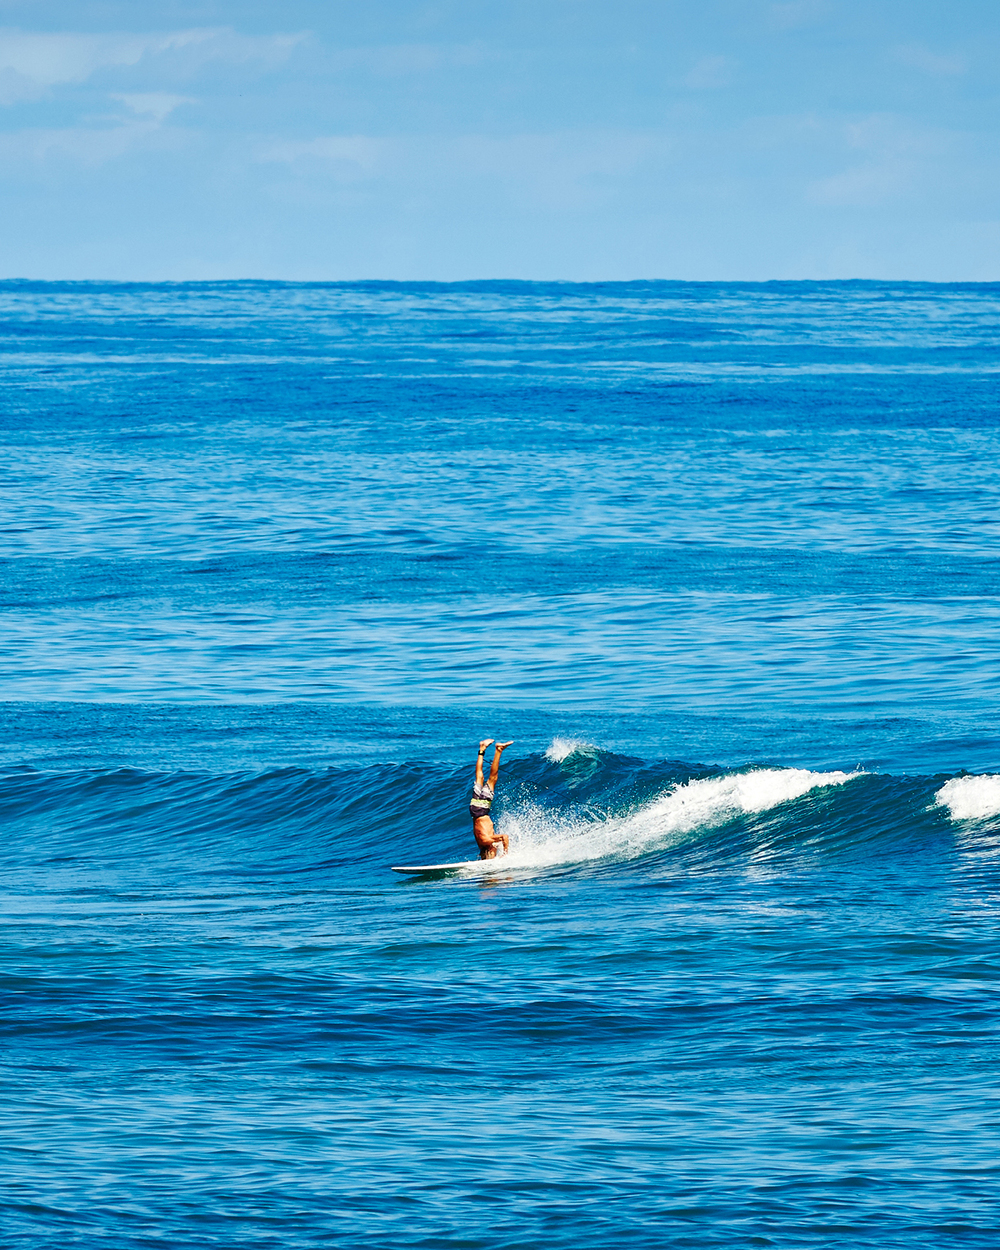 SUMMER FUN AT BANZAI PIPELINE